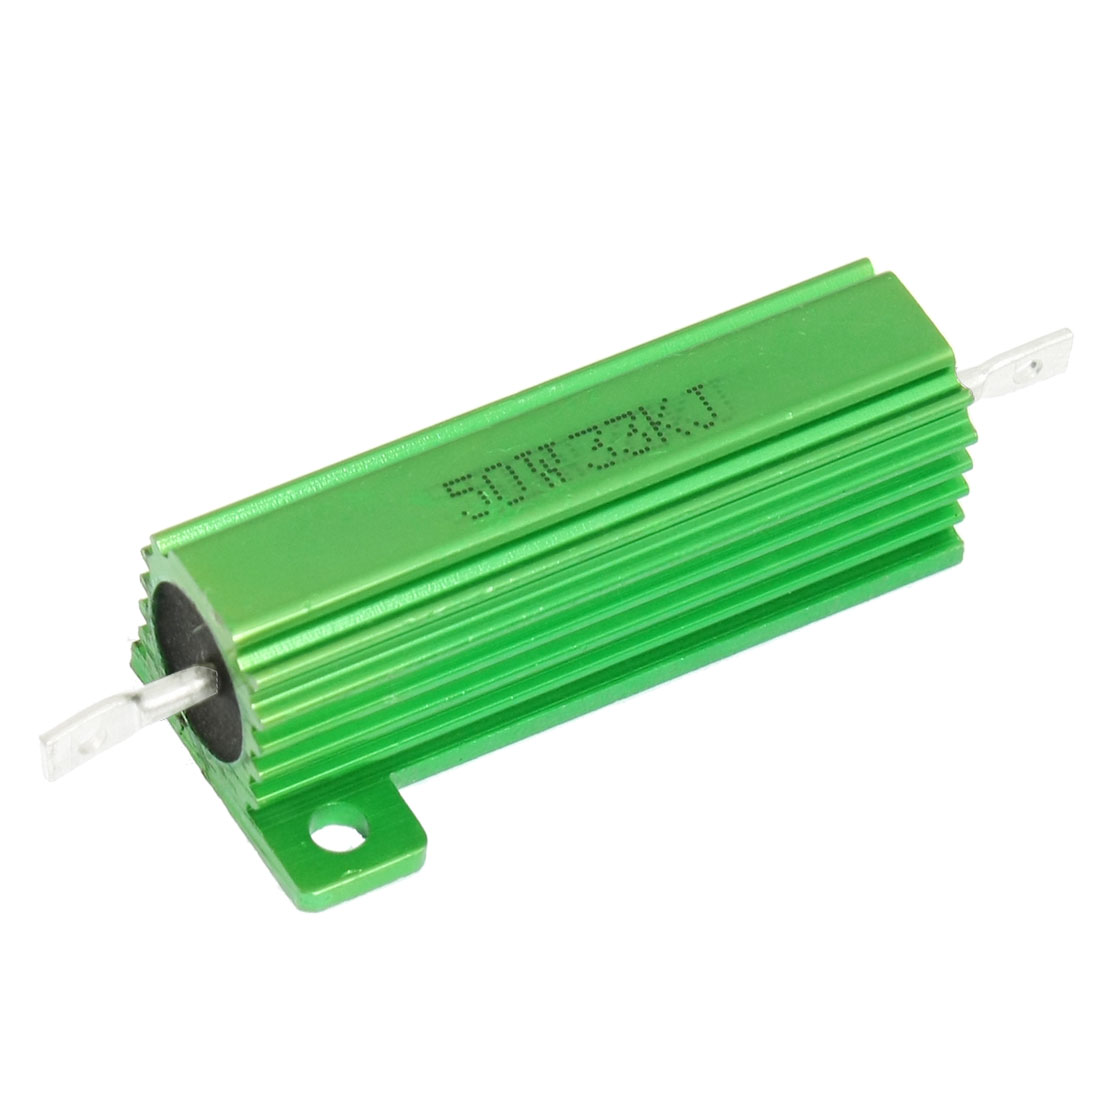 50W 33K Ohm Screw Tap Mounted Green Aluminum Housed Wirewound Resistor